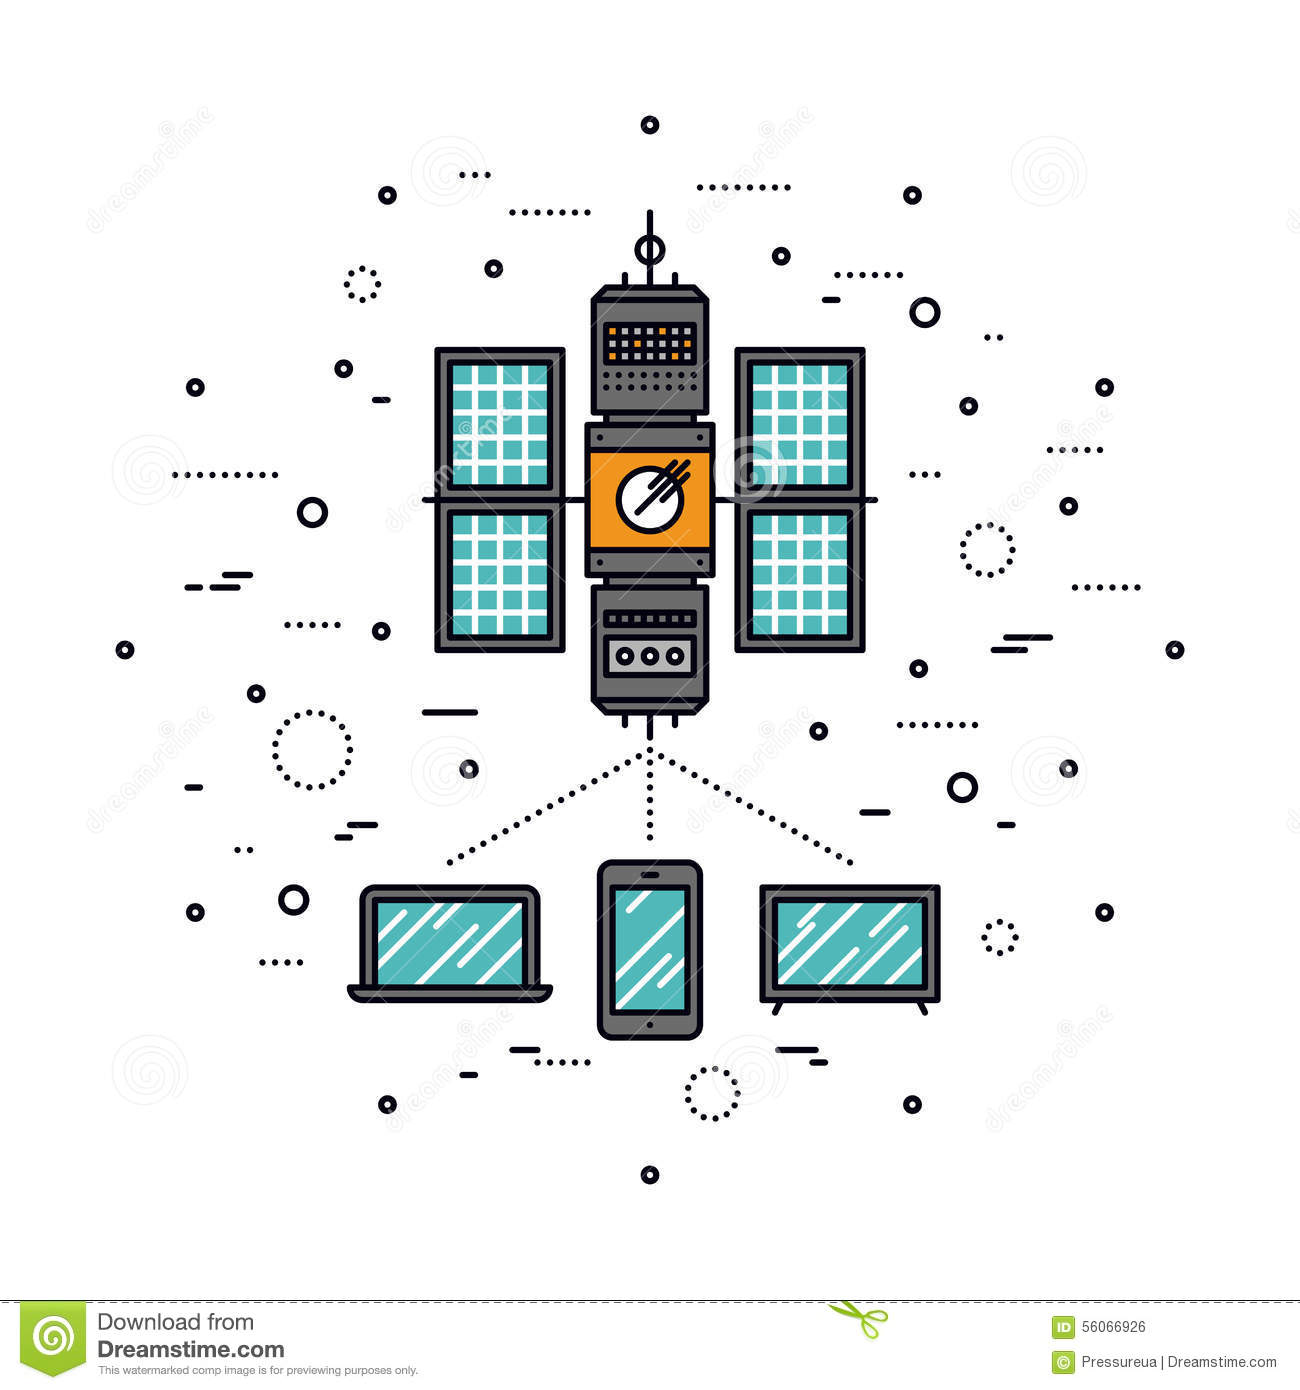 Transmission Stock Illustrations 26835 Circuit Board And Binary Code Vector Clipart Of Cellular Line Style Illustration Thin Flat Design Lte Based On